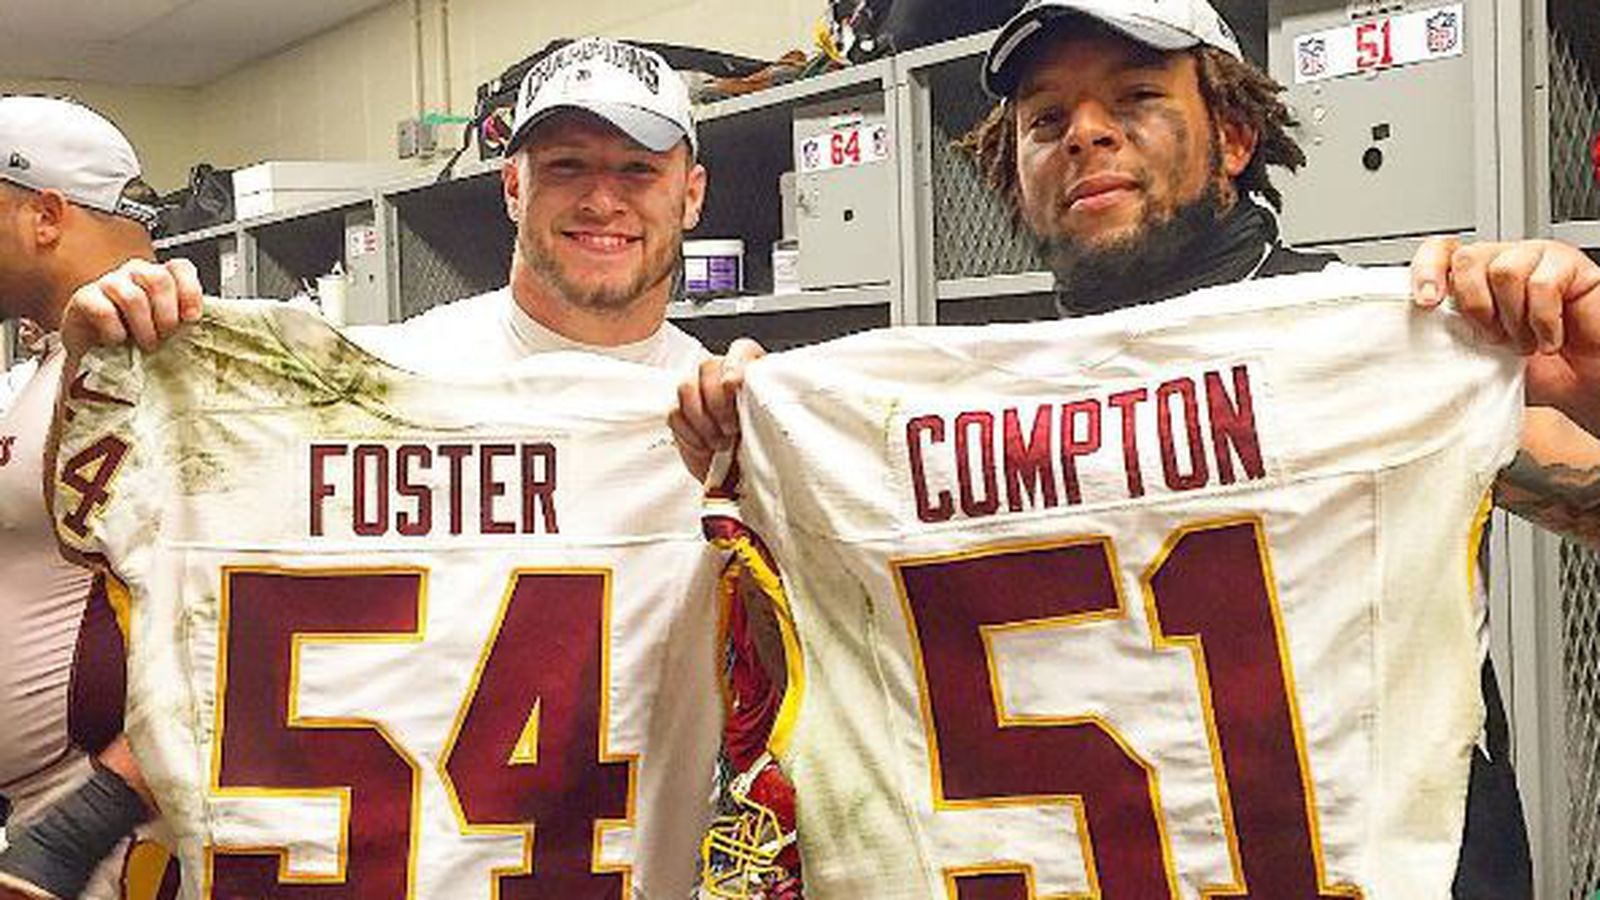 Compton___foster.0